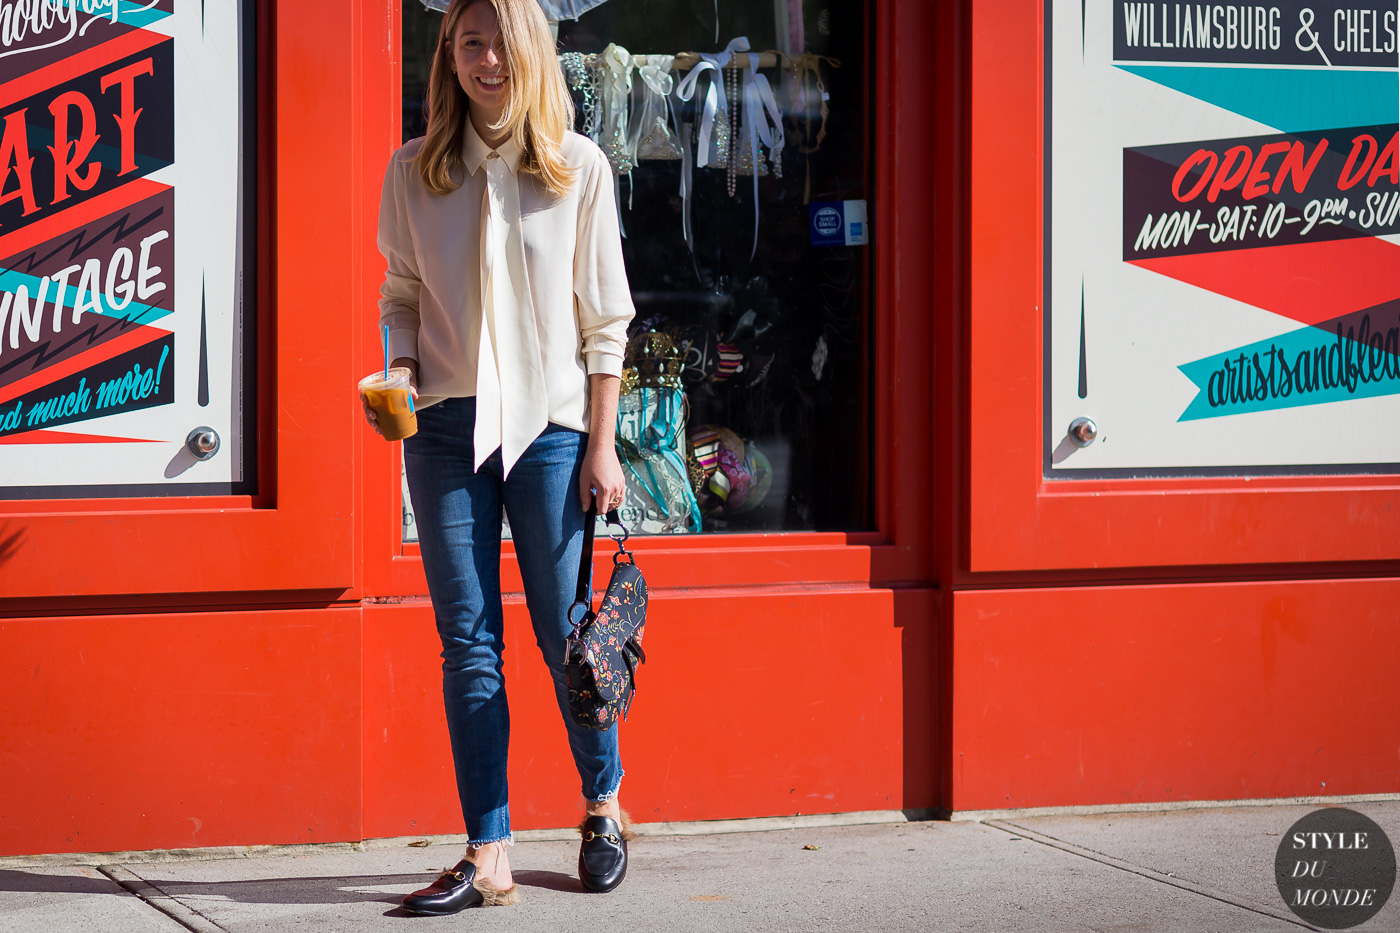 Caroline Grosso Street Style Street Fashion Streetsnaps by STYLEDUMONDE Street Style Fashion Photography